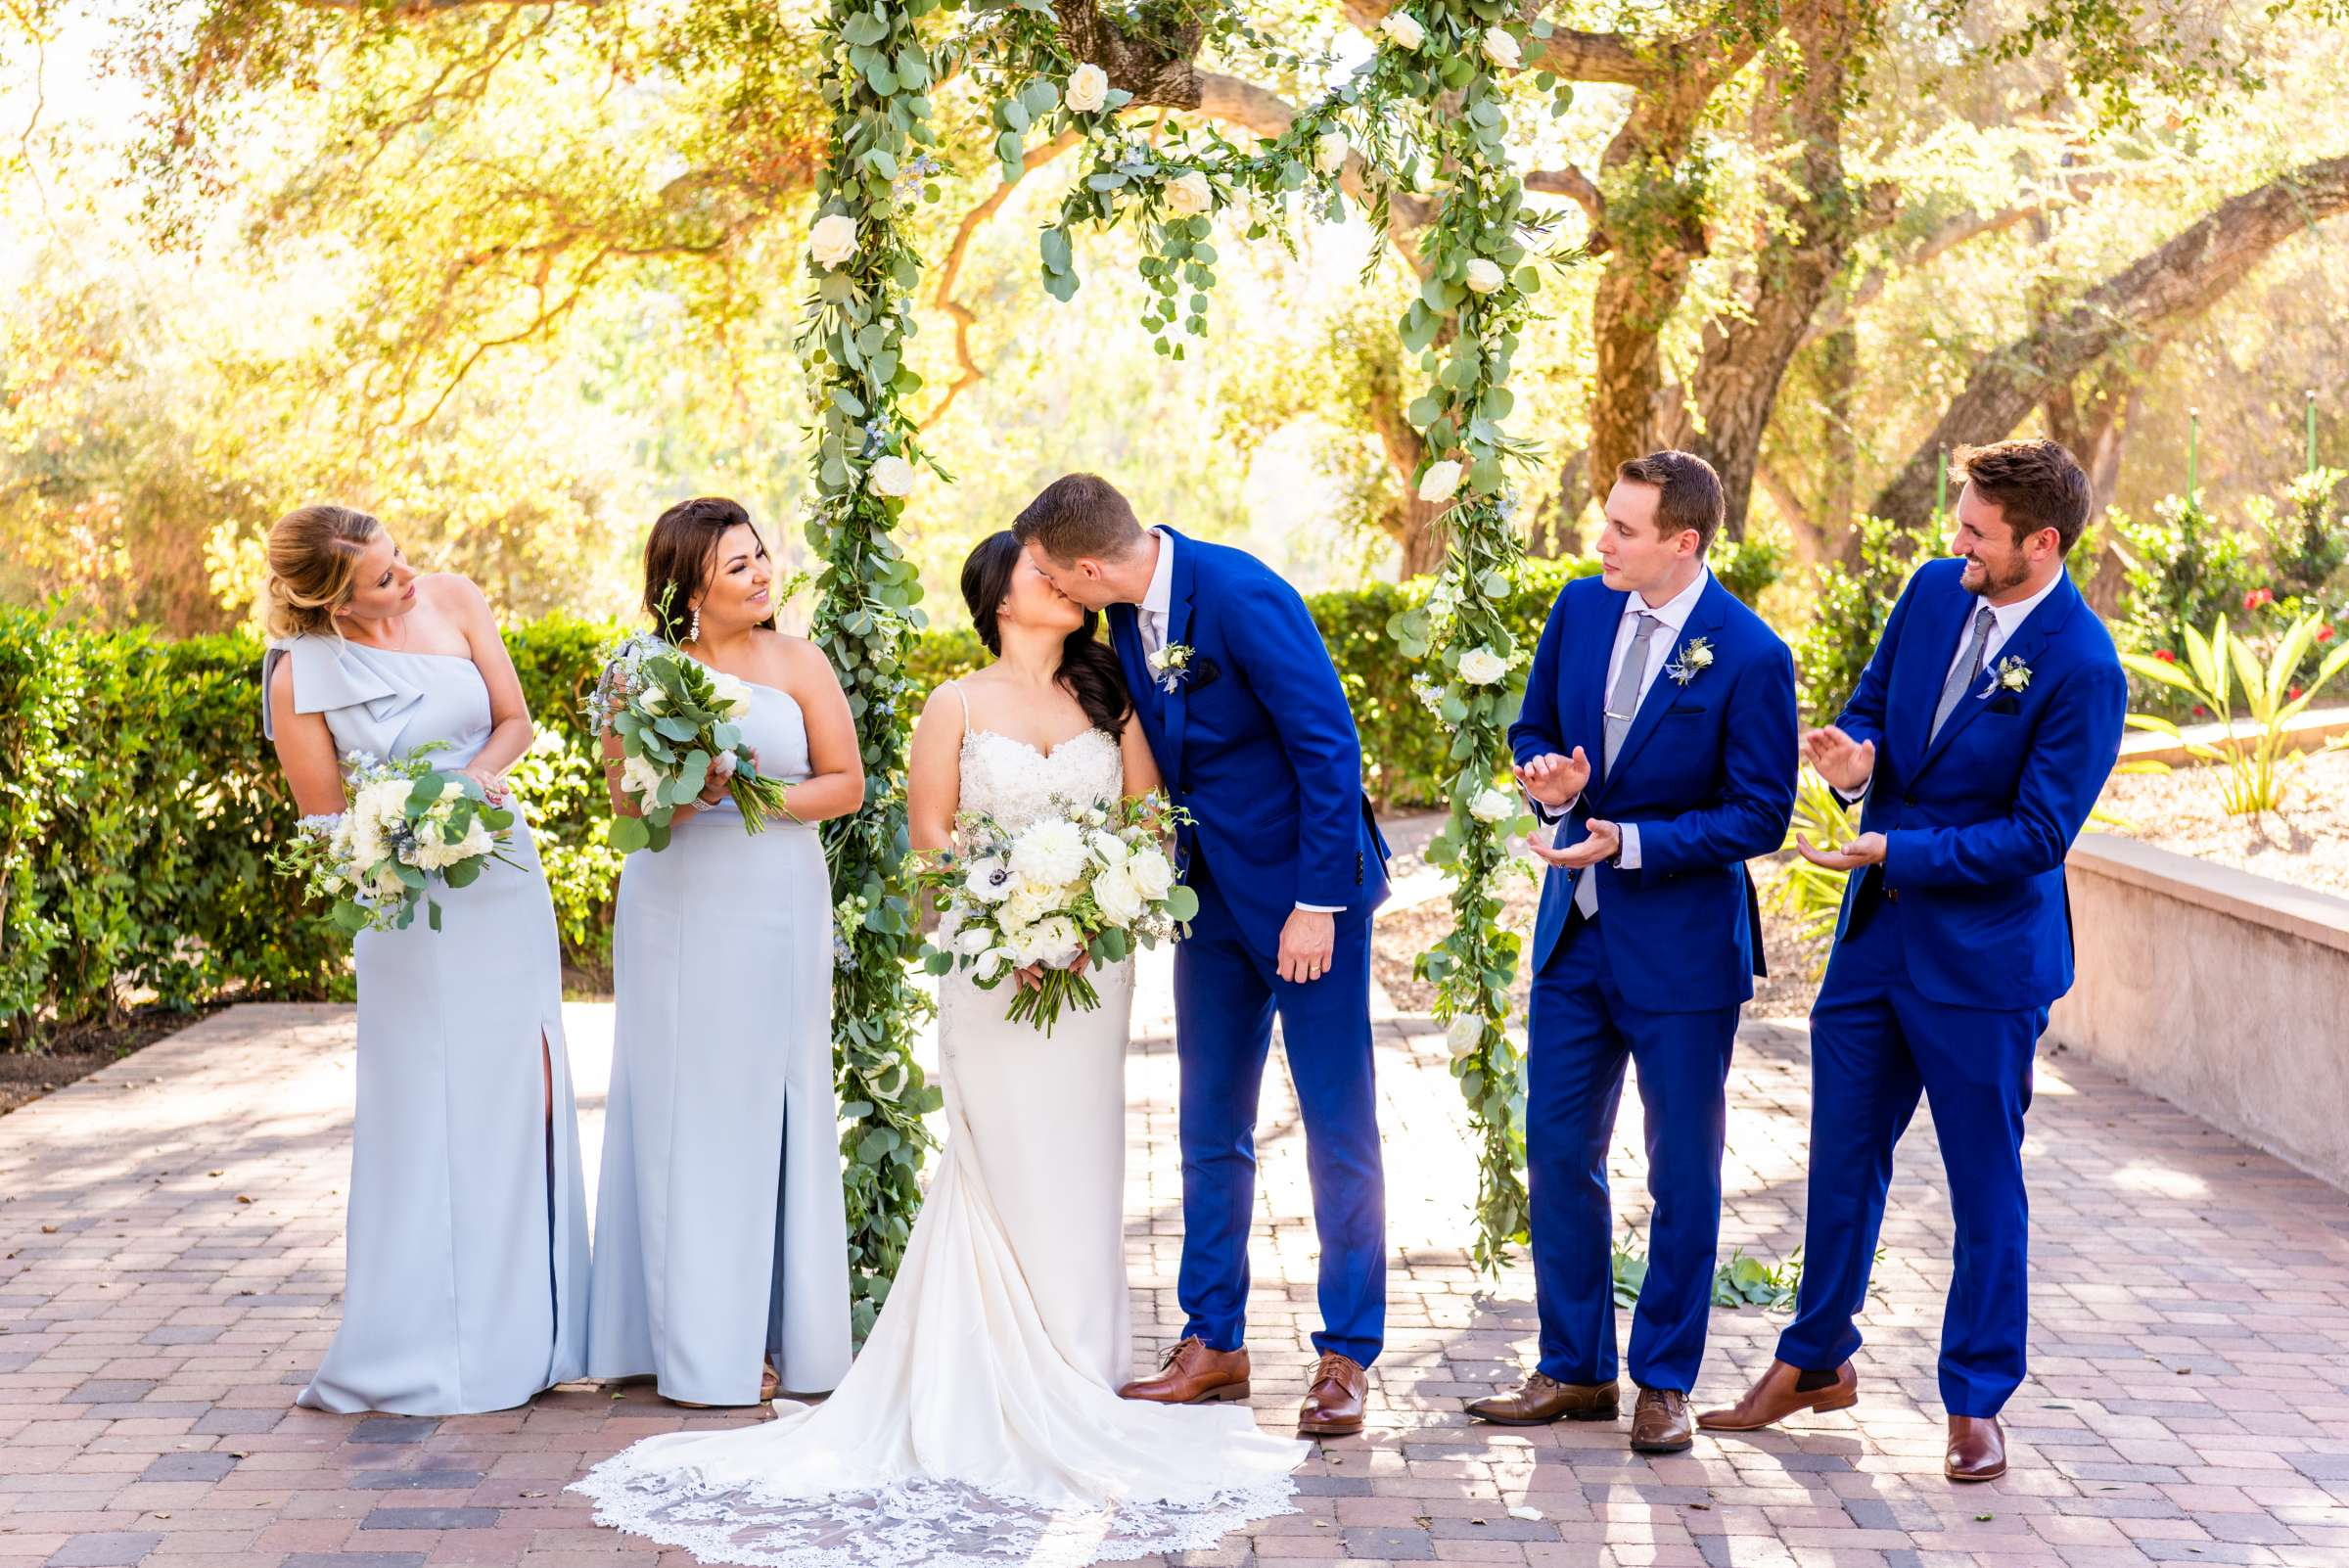 Mt Woodson Castle Wedding coordinated by I Do Weddings, Aya and Jared Wedding Photo #486957 by True Photography